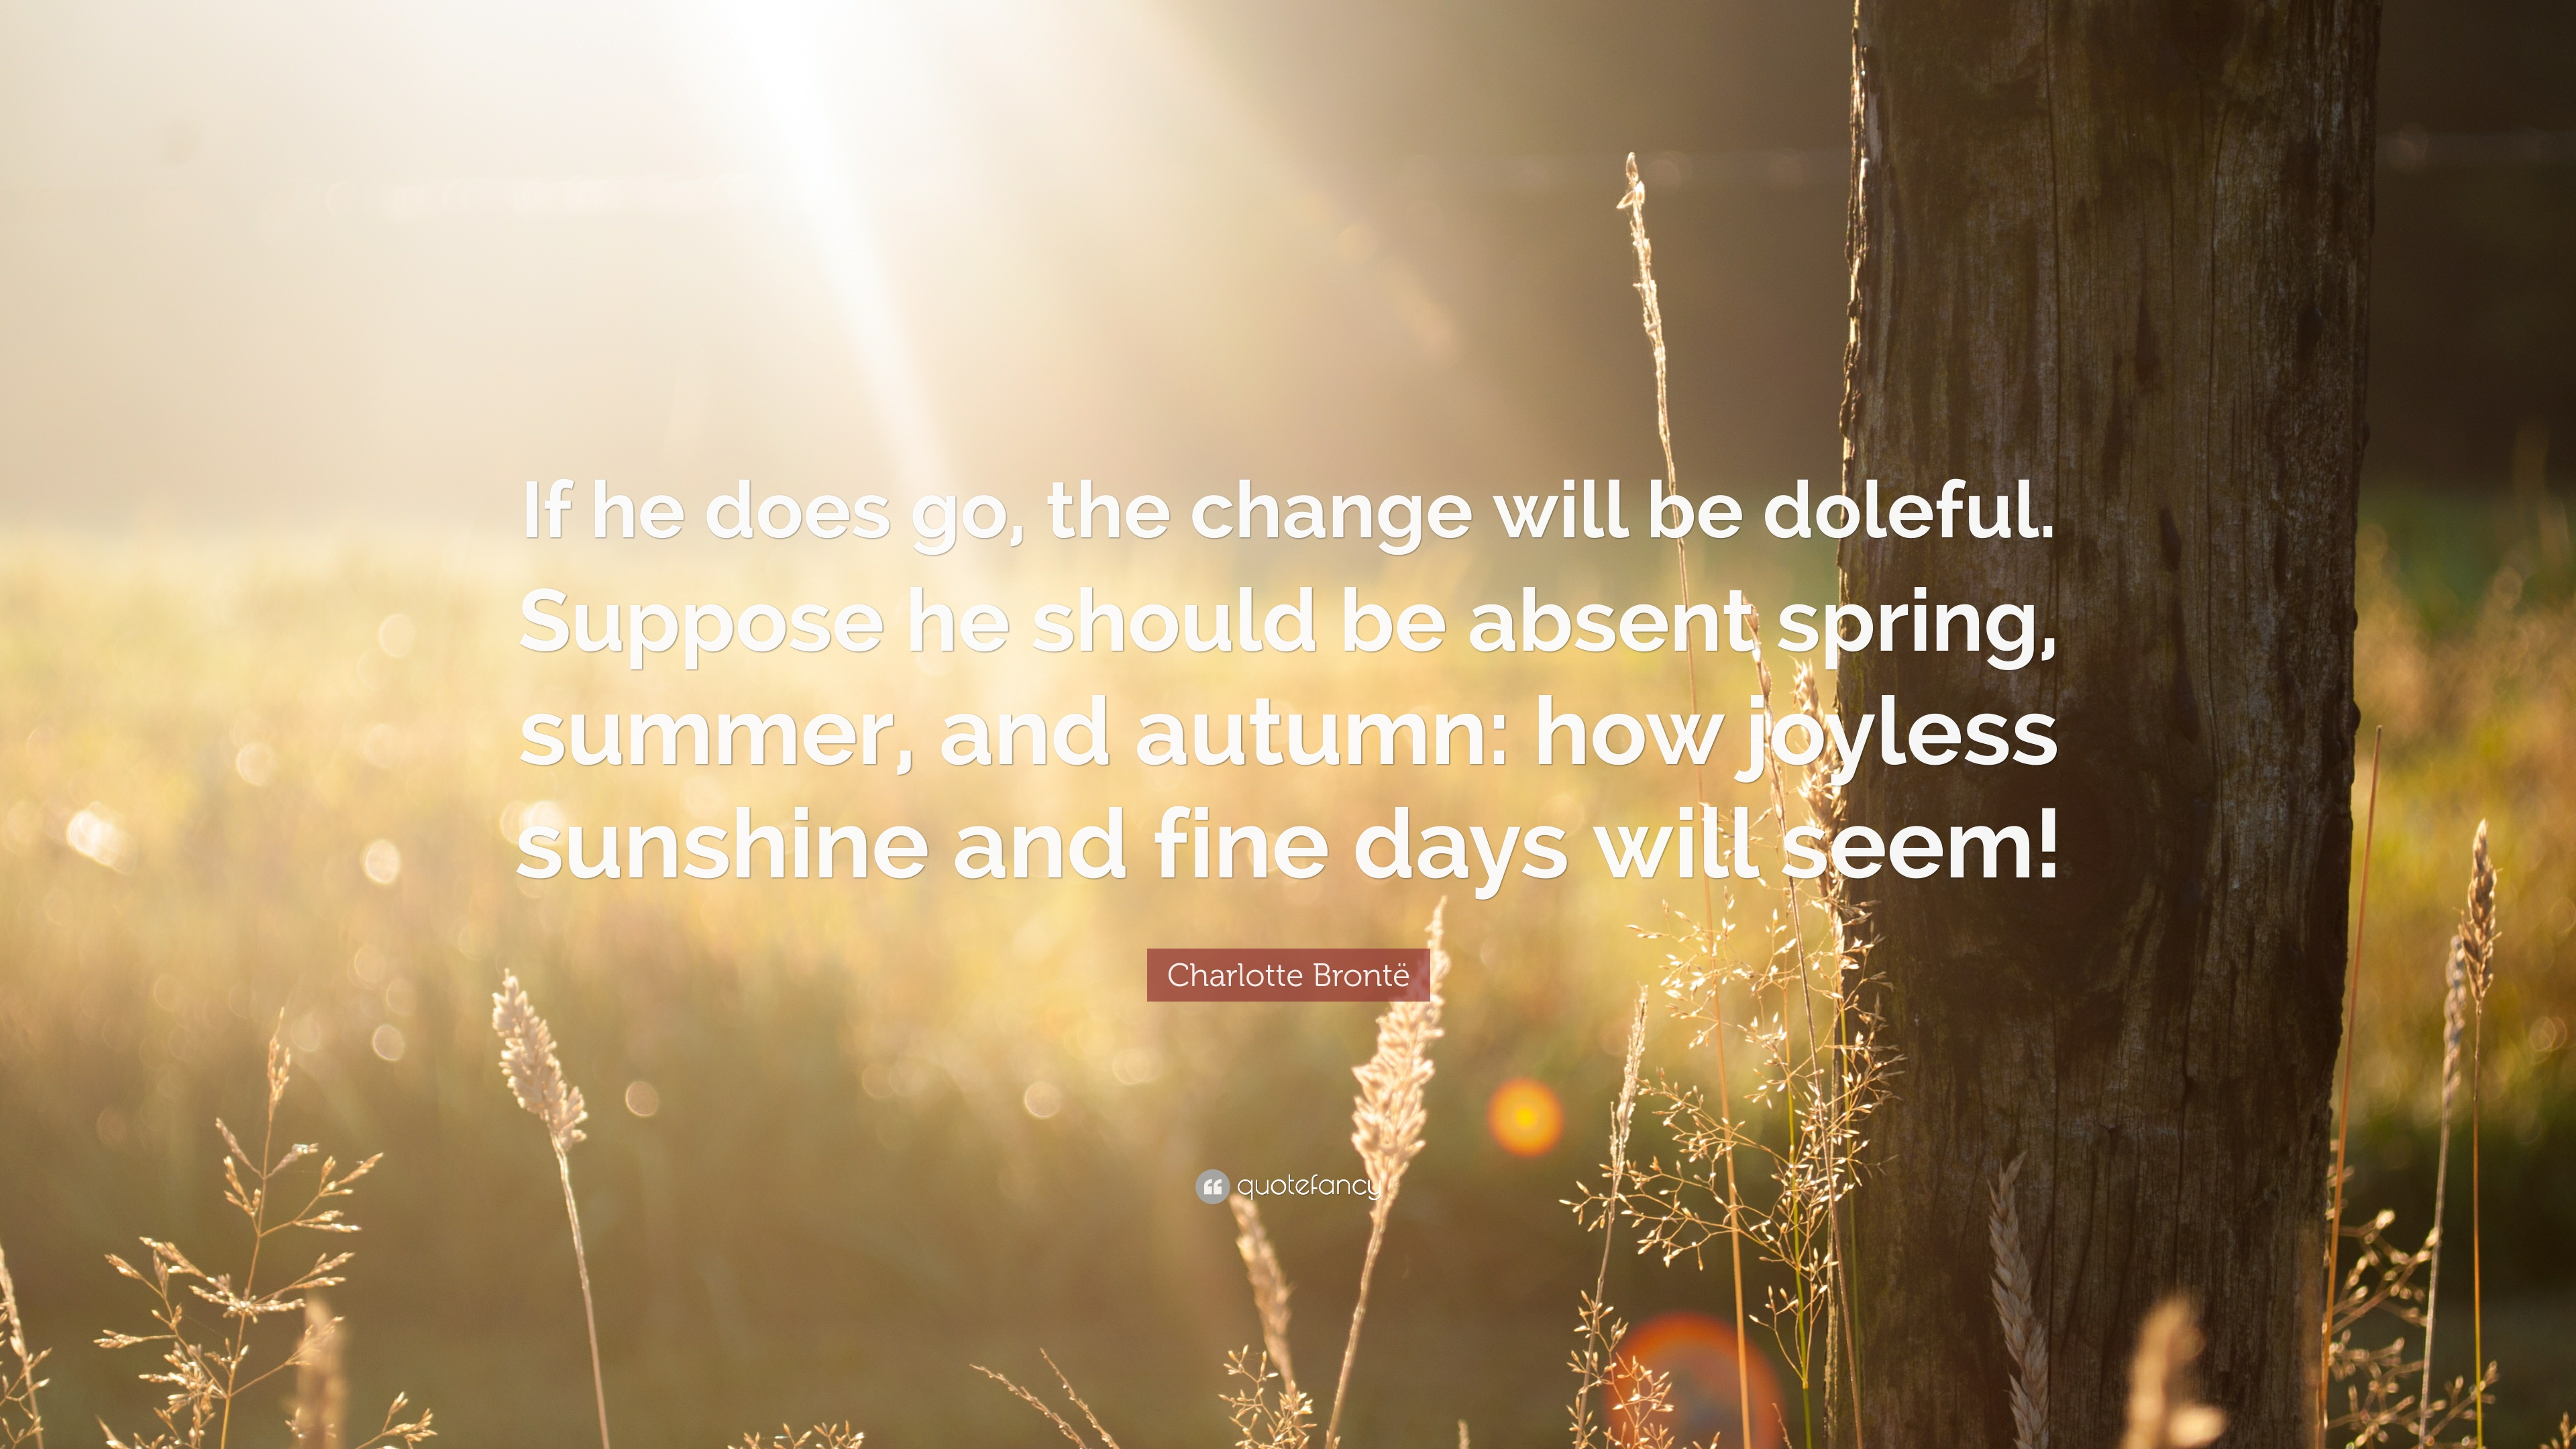 Charlotte Brontë Quote: U201cIf He Does Go, The Change Will Be Doleful.